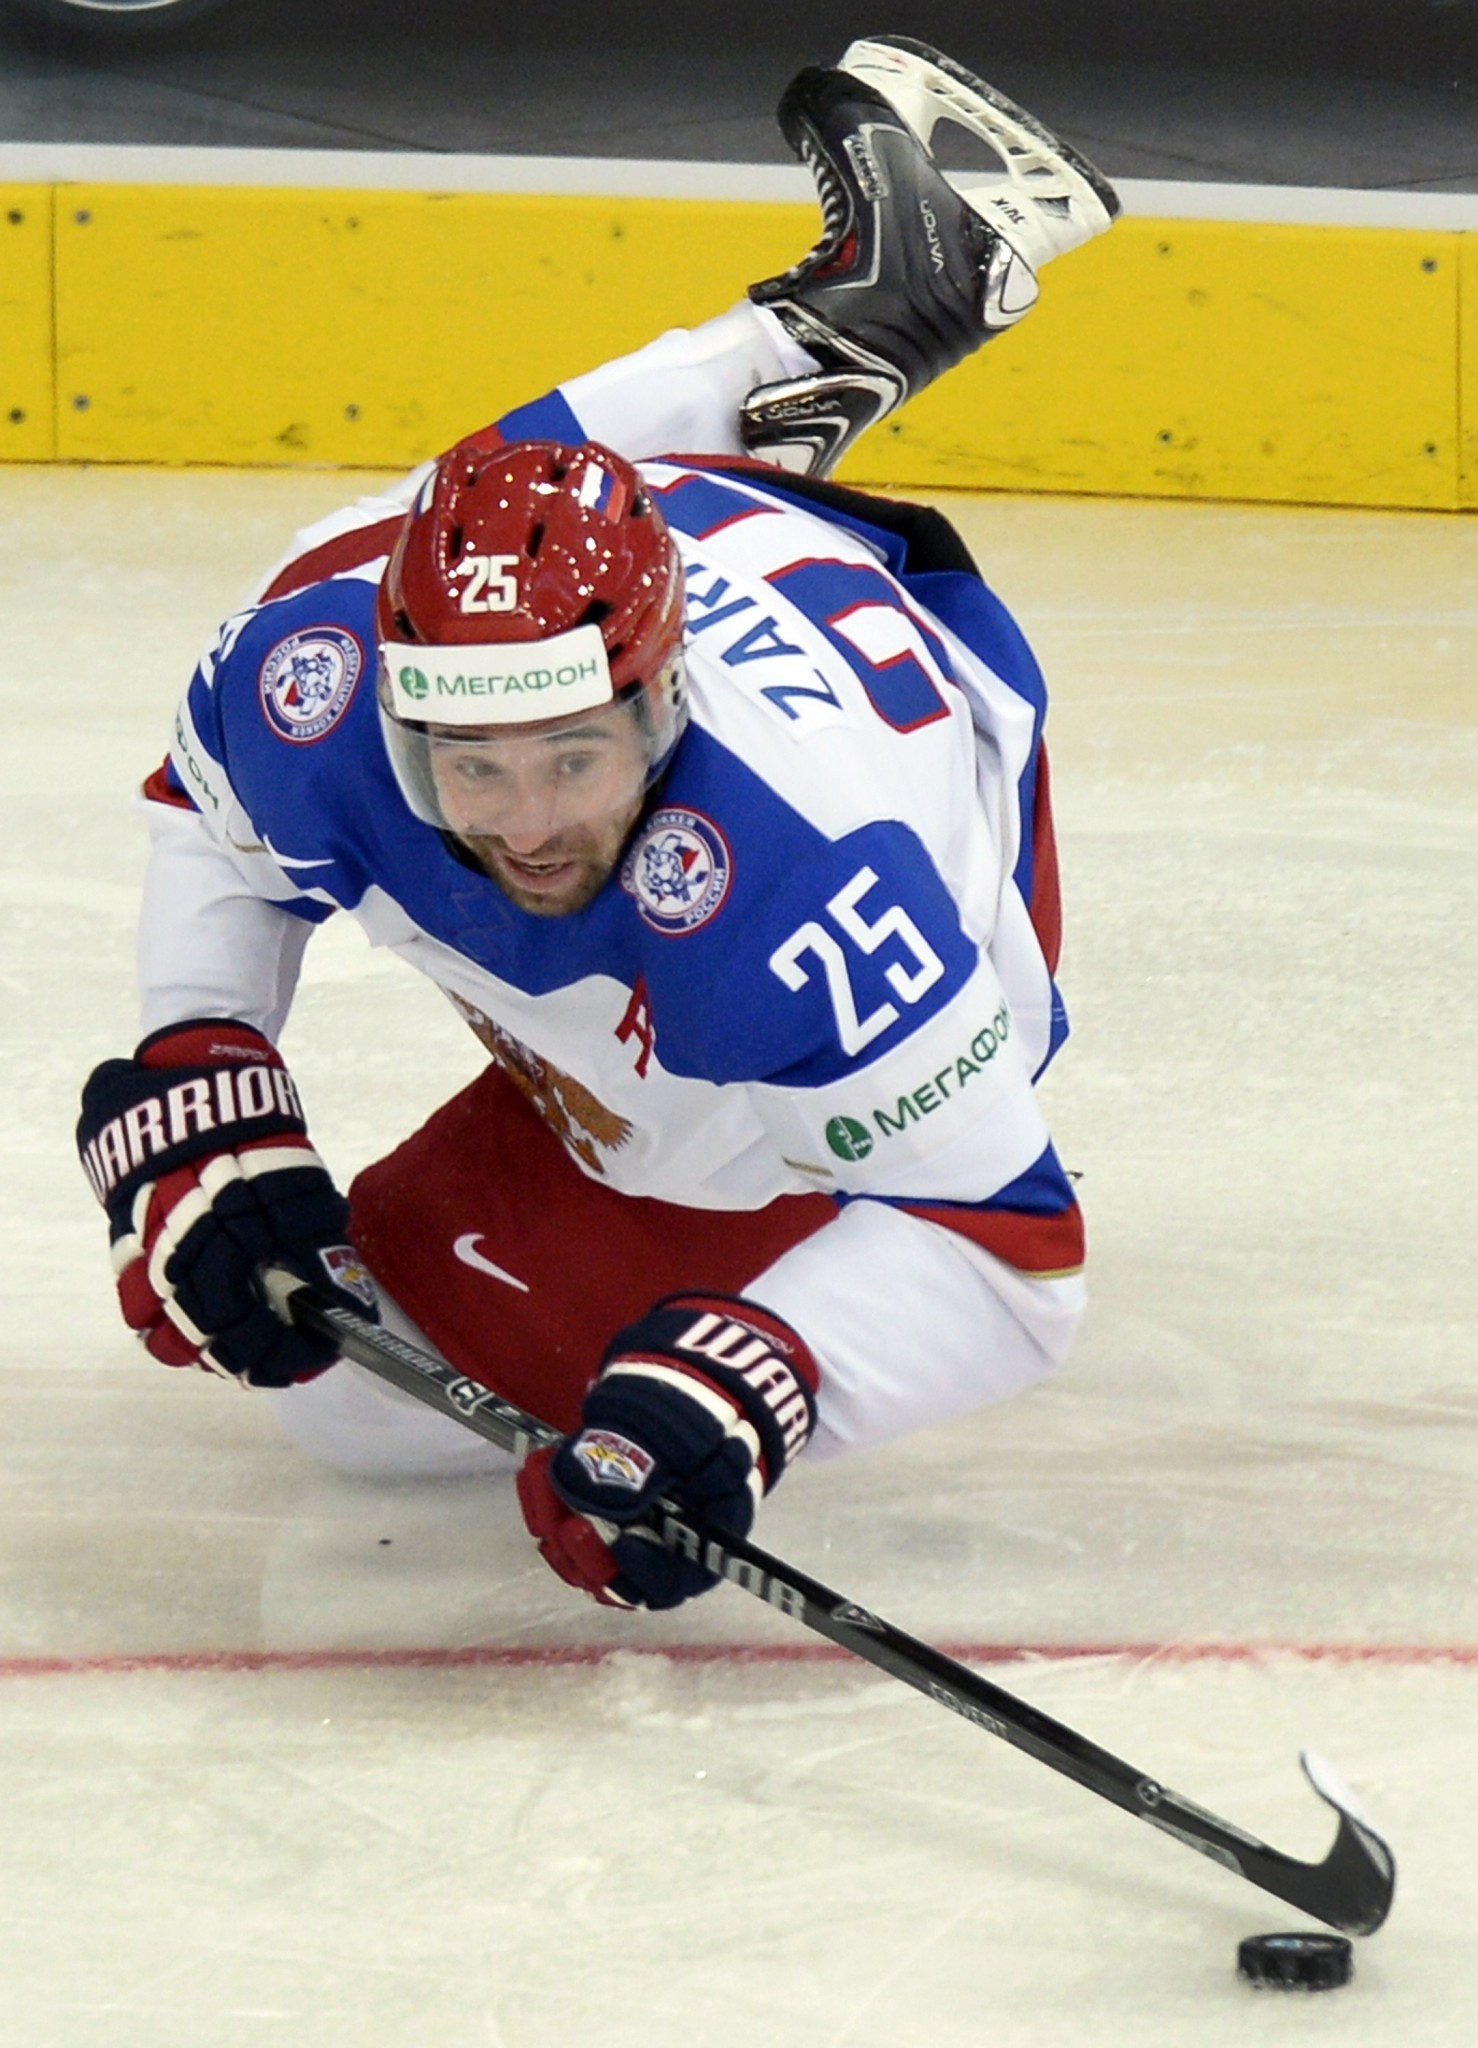 Danis Zaripov was given a two-year drugs ban by the IIHF last month ©Getty Images